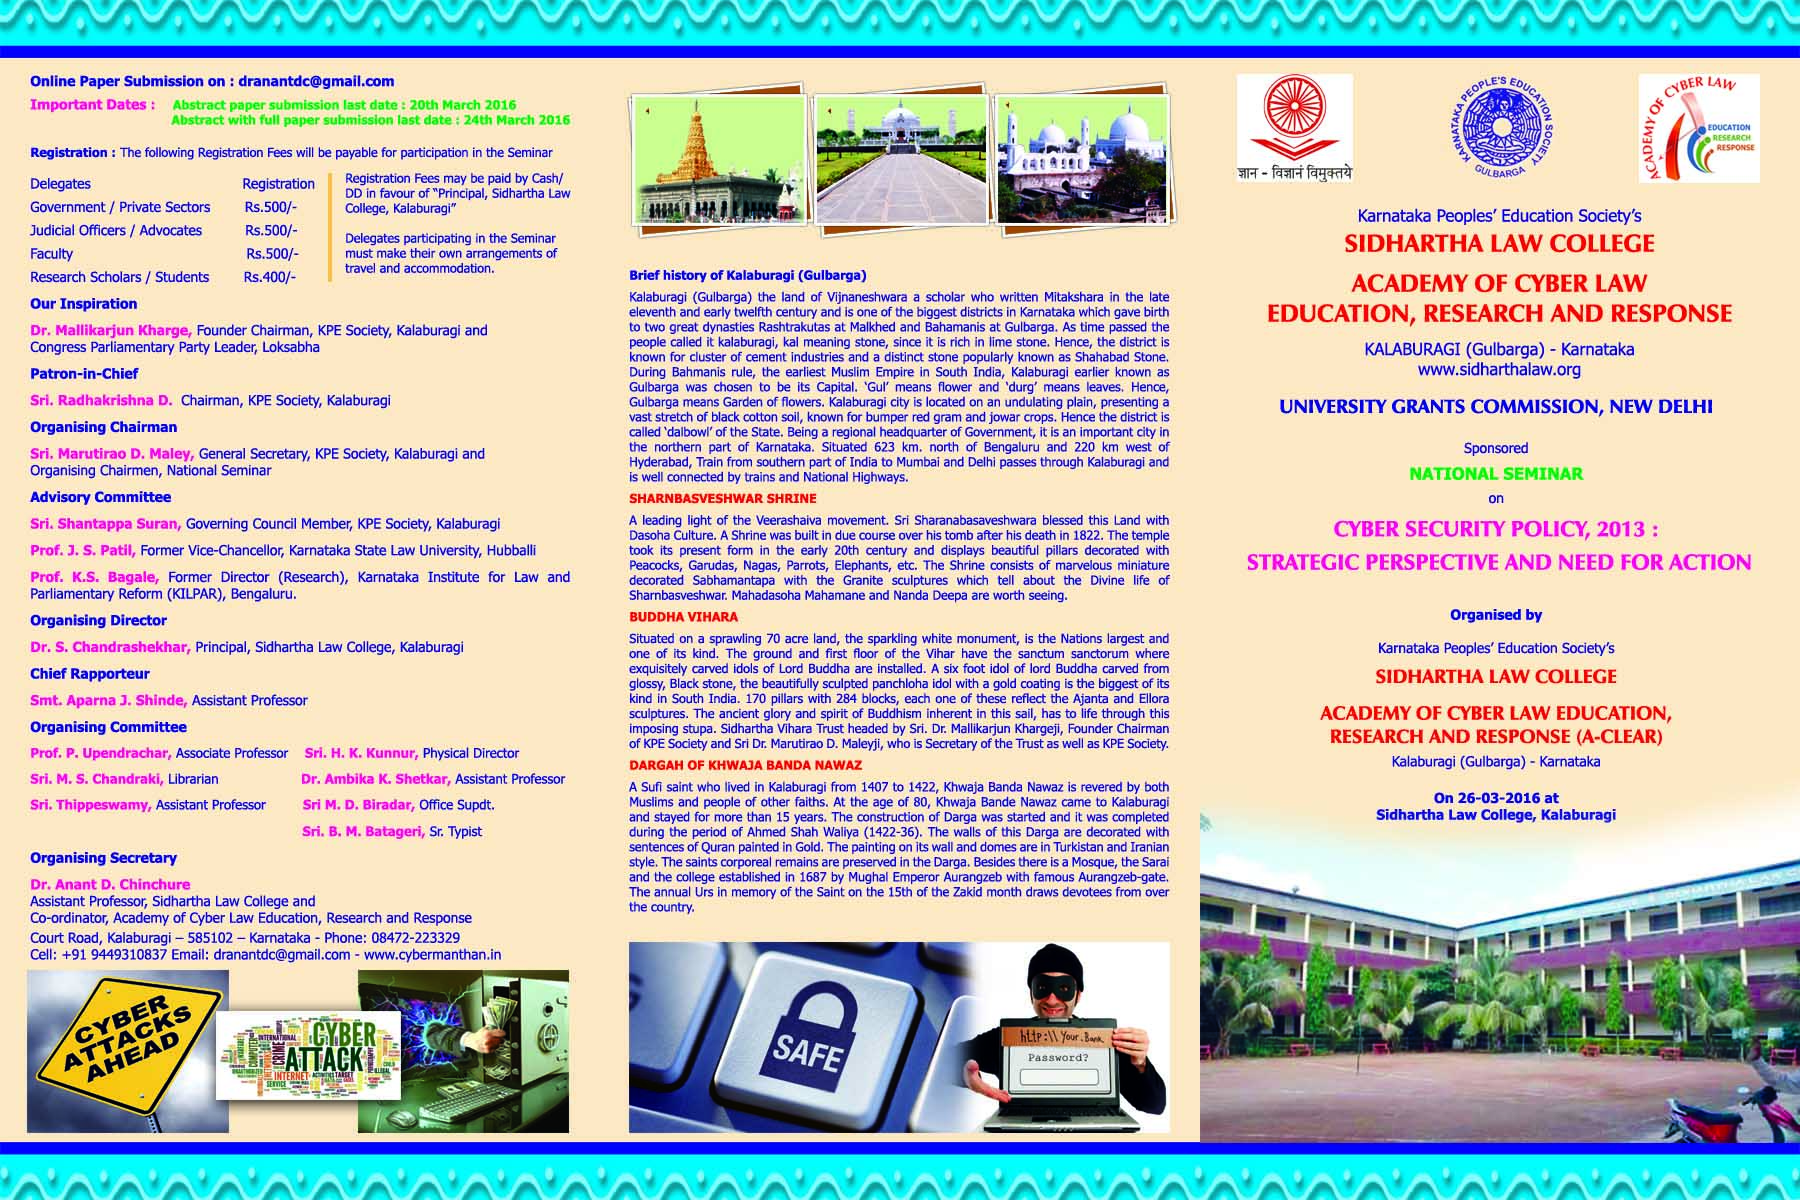 SLC's One-day National Seminar on Cyber Security Policy, 2013